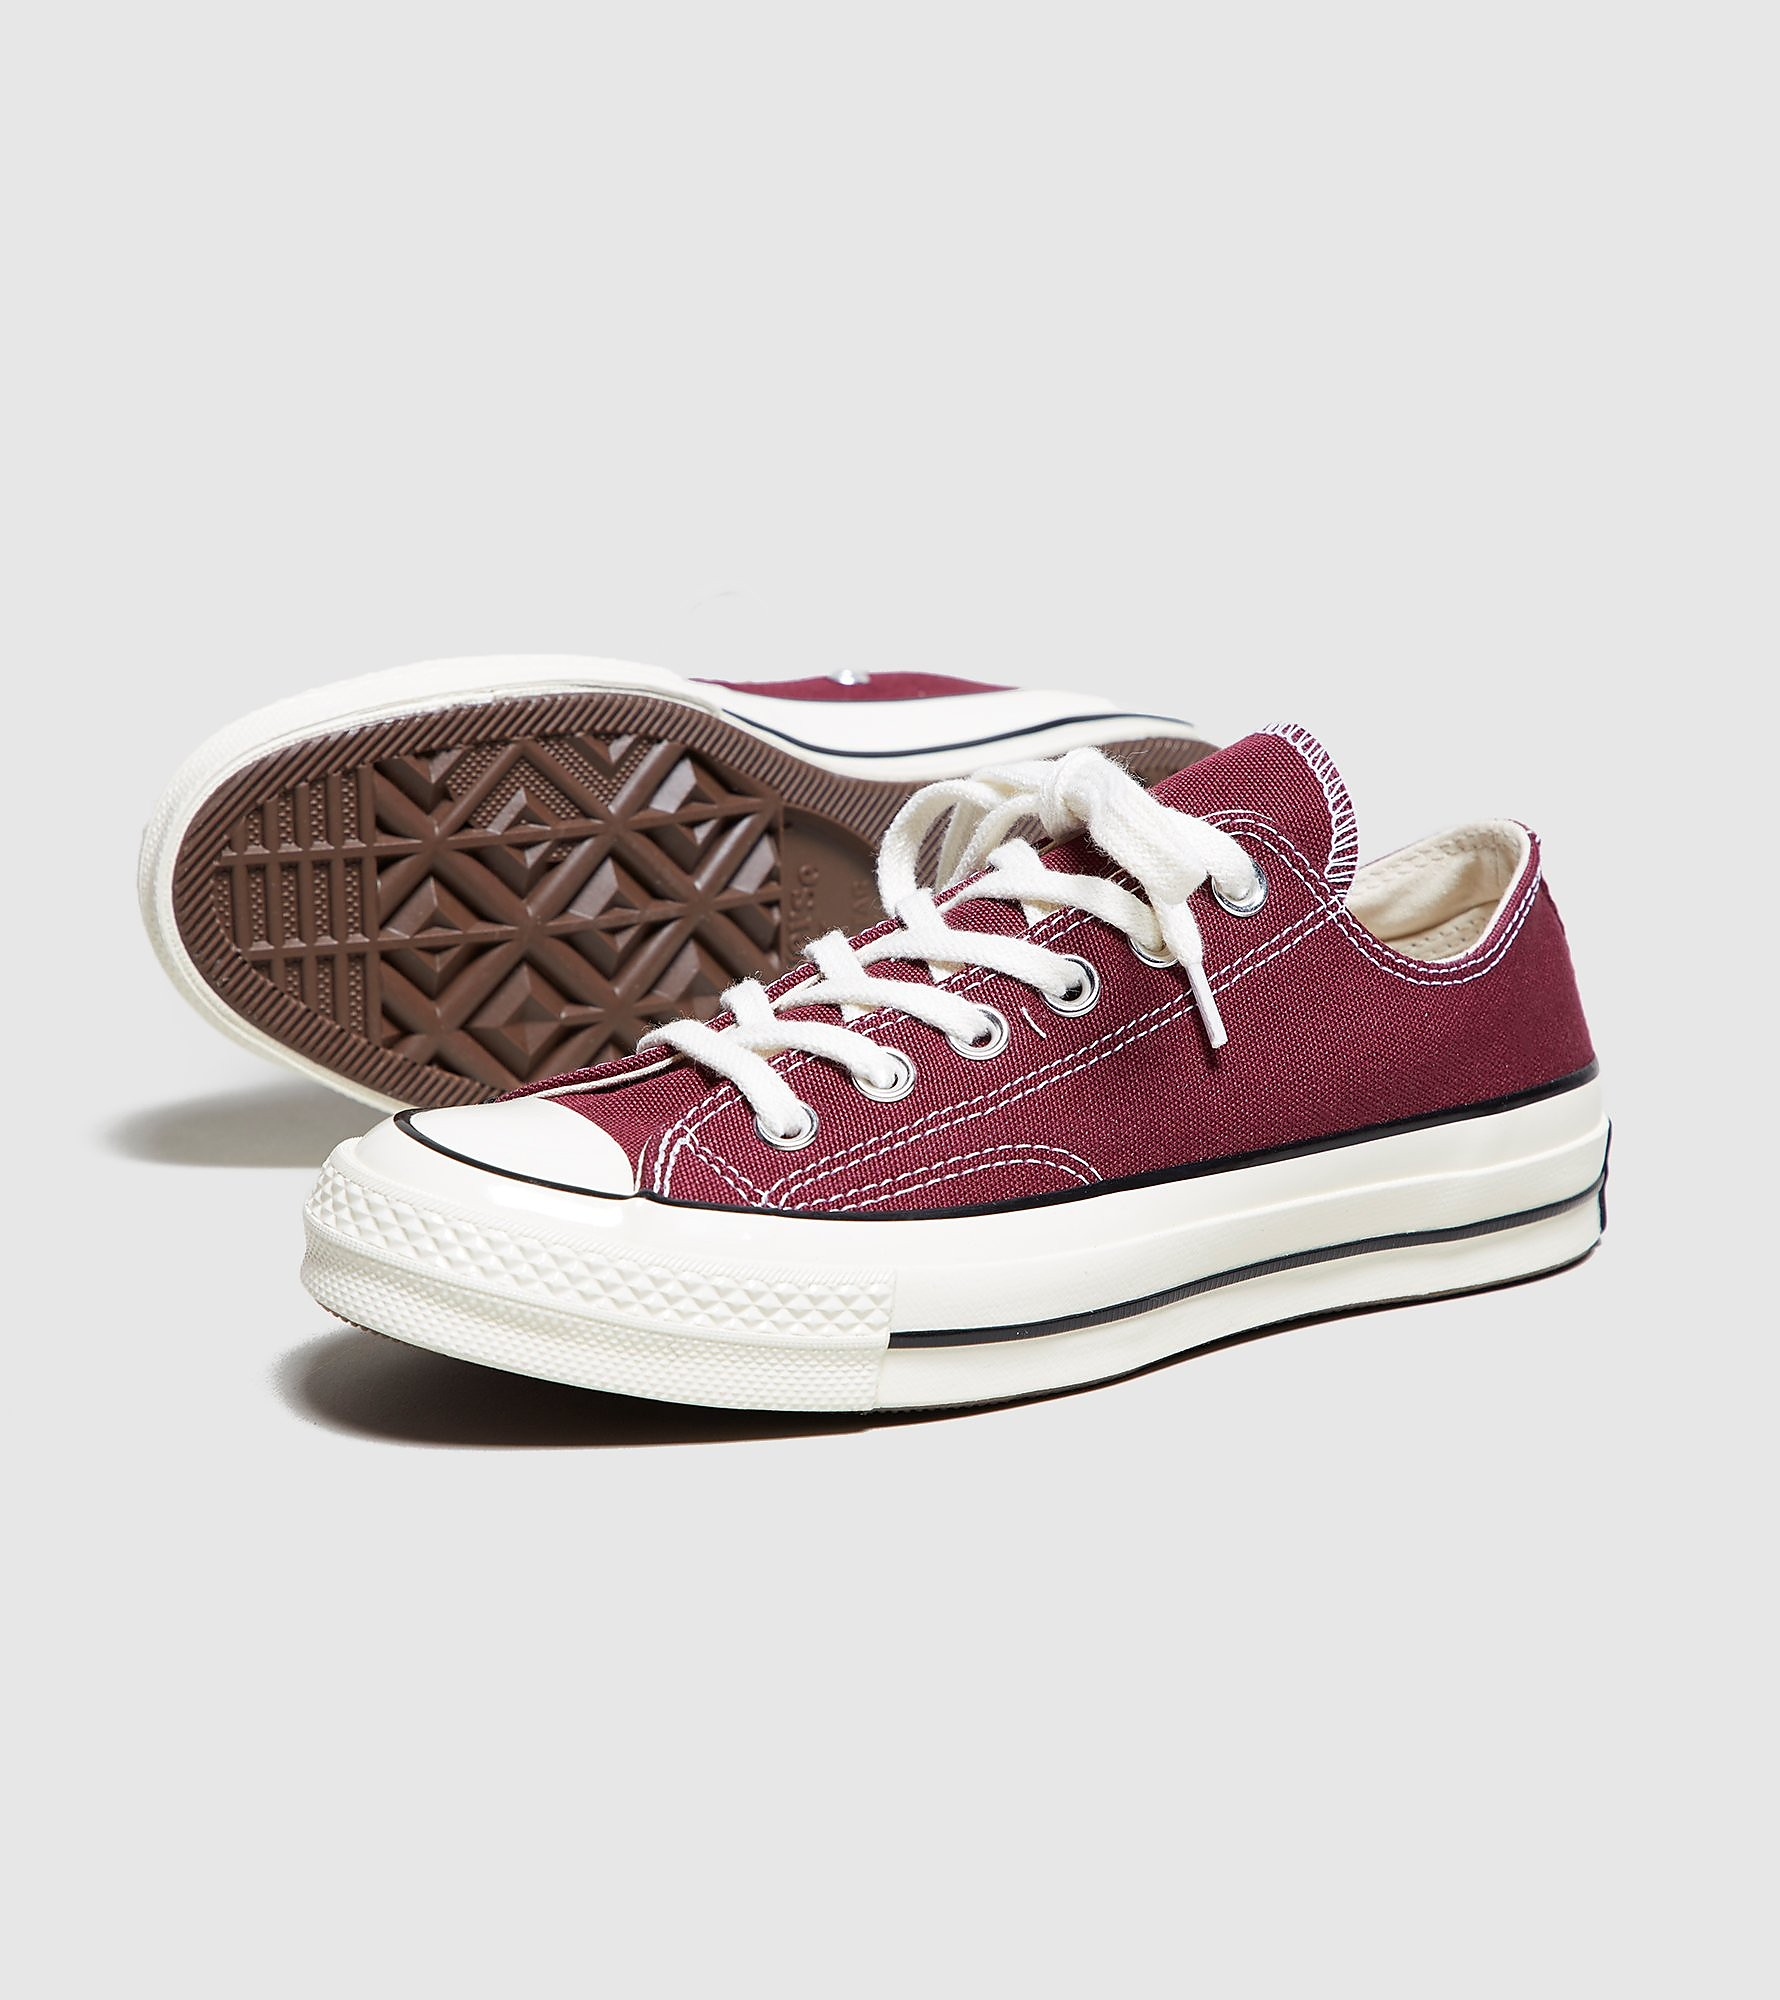 Converse All Star 70'S Ox Women's